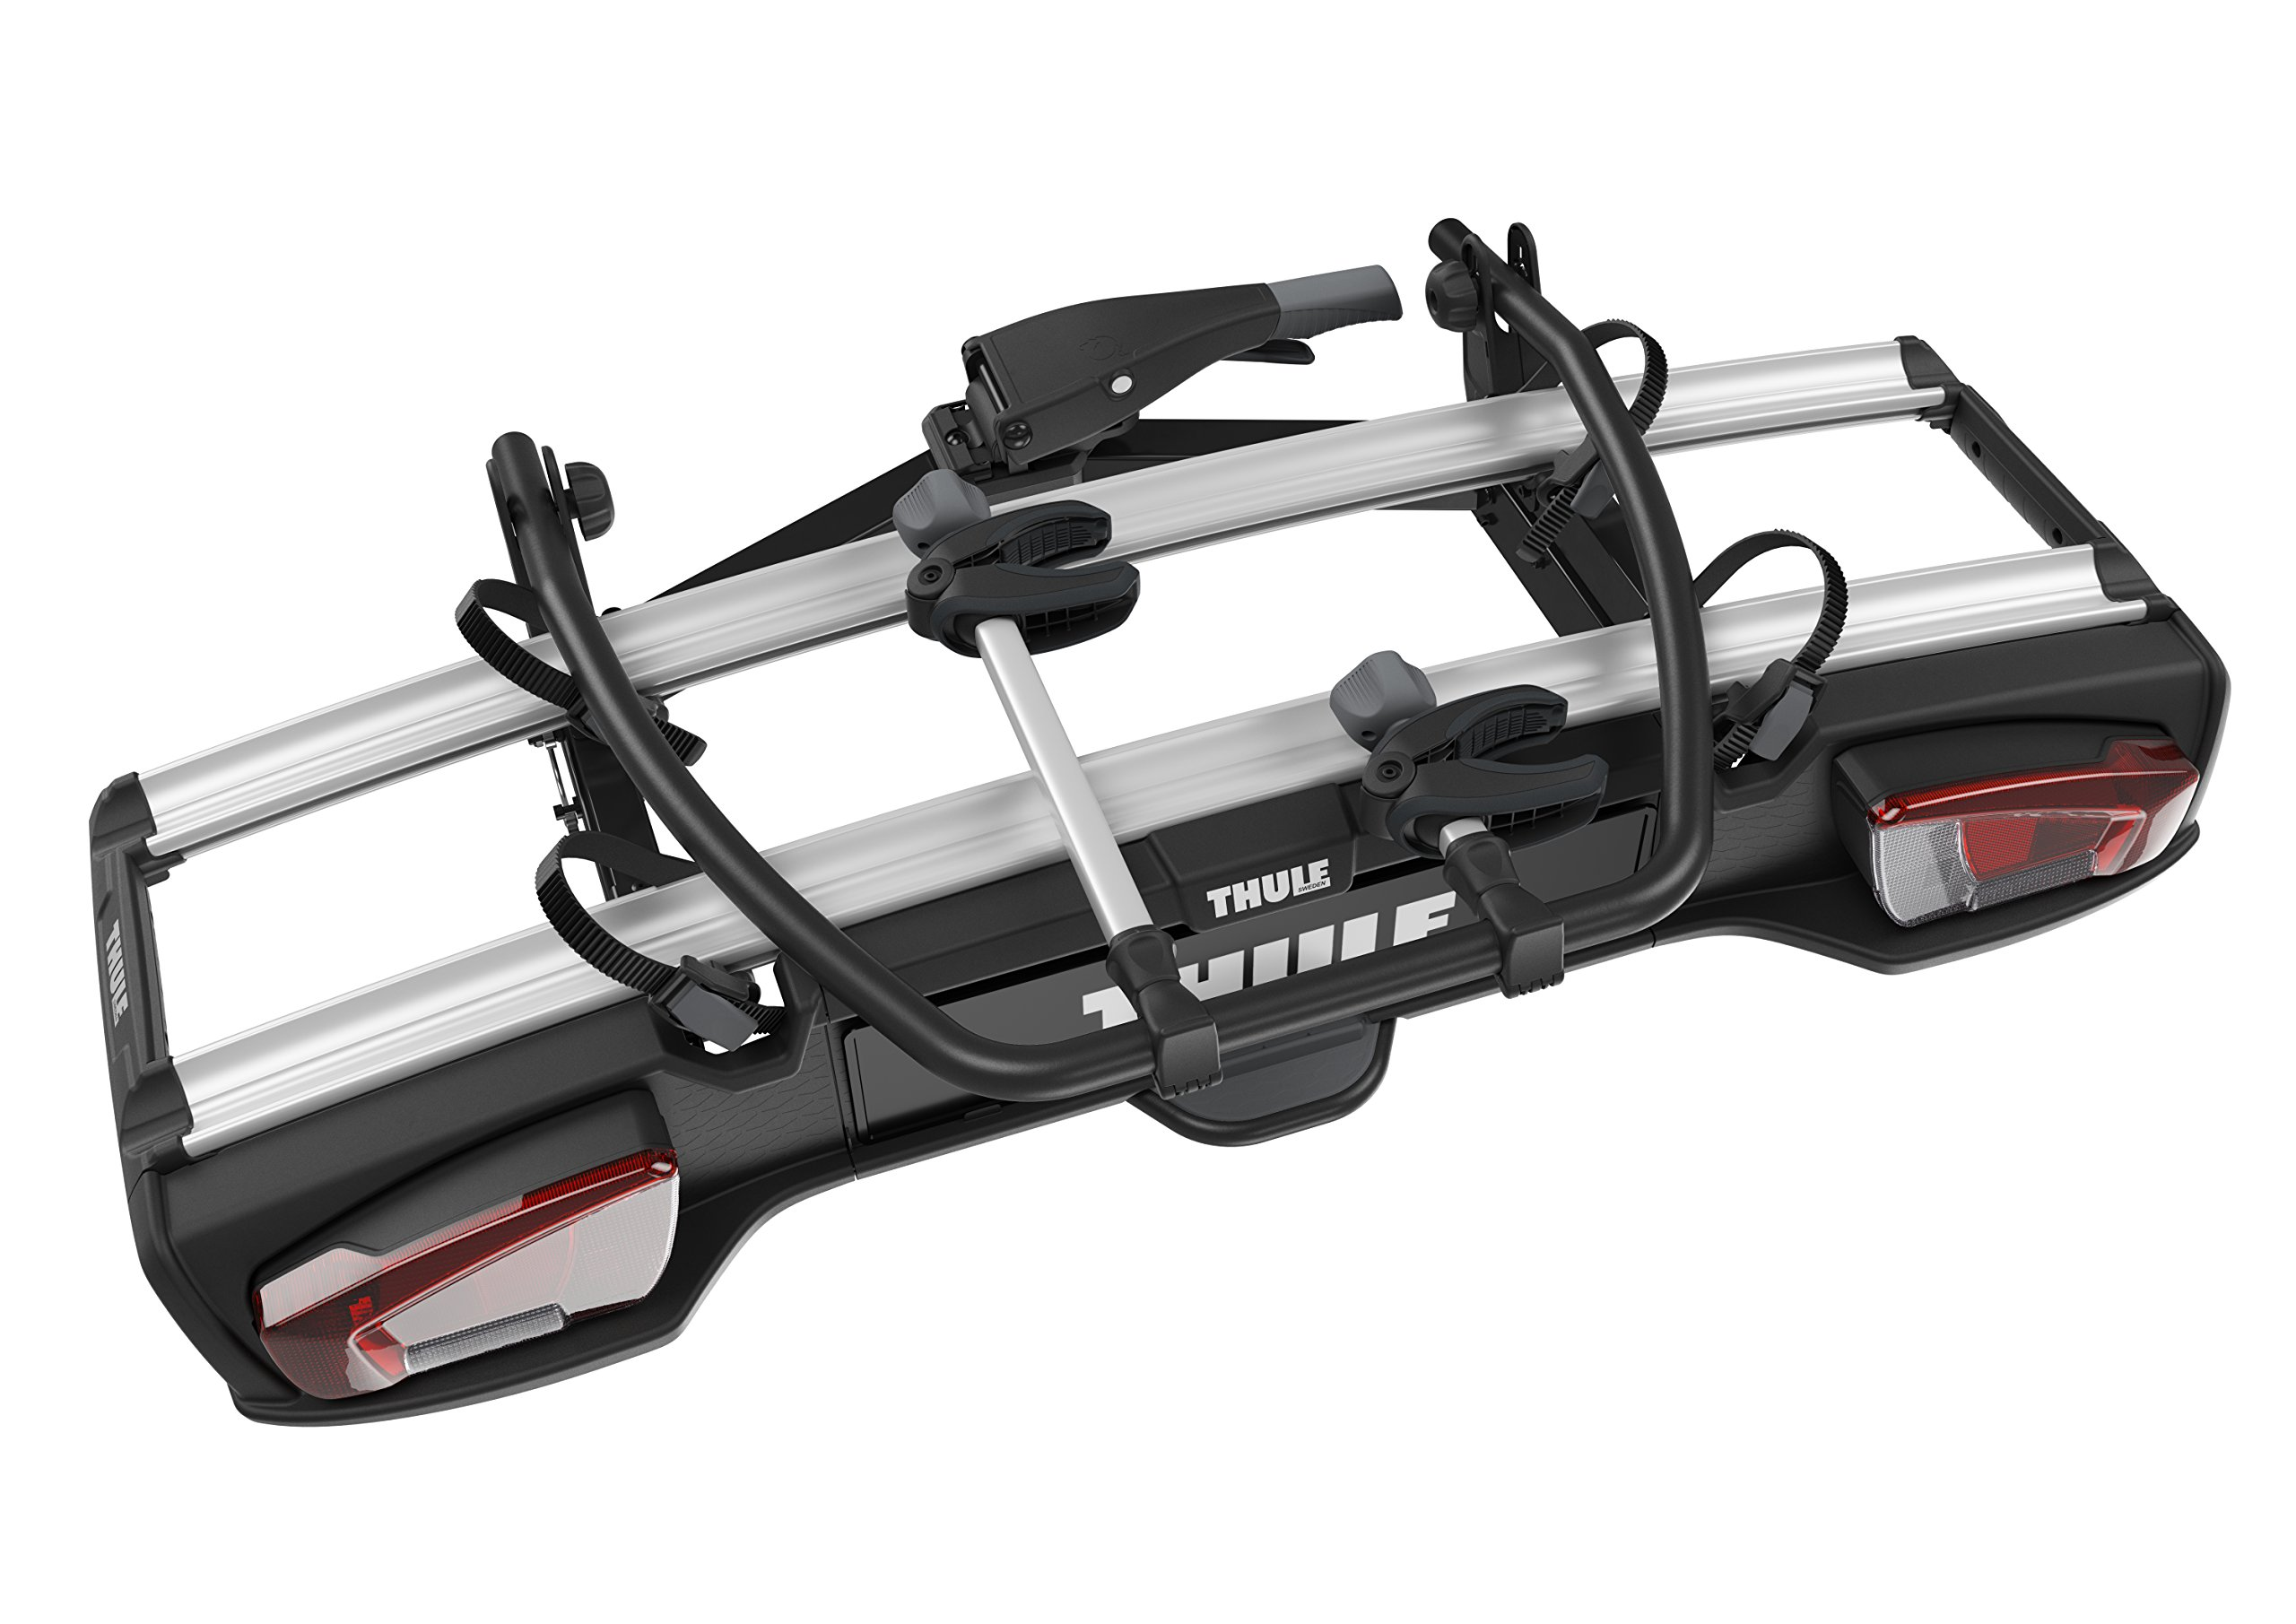 Thule 925001,Velo Compact 925, 2Bike, Towball Carrier, 7 pin 12